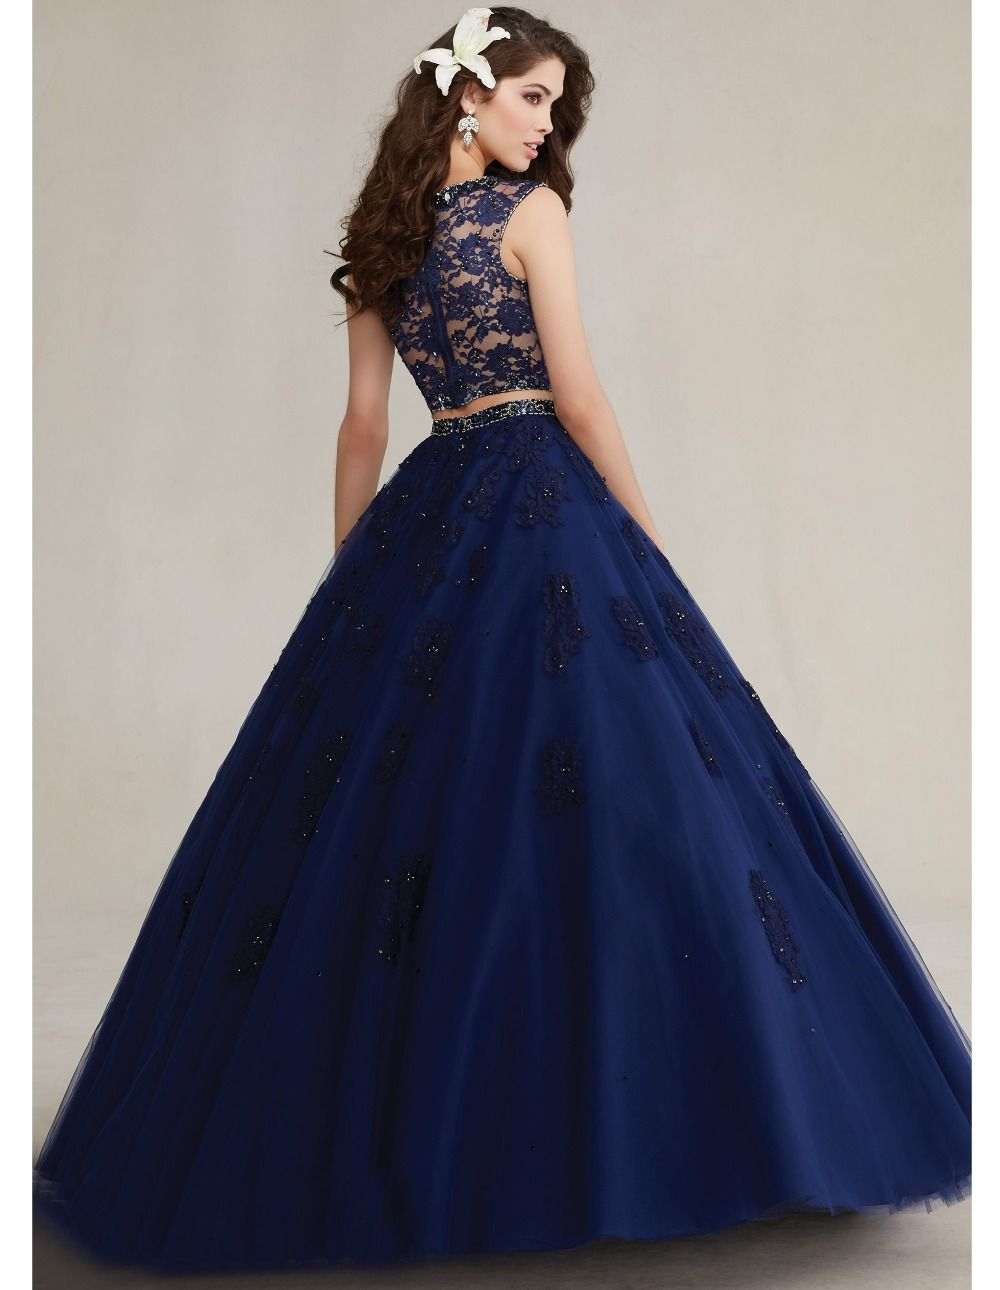 Newest crystal lace royal blue sweet 16 dresses two pieces ...